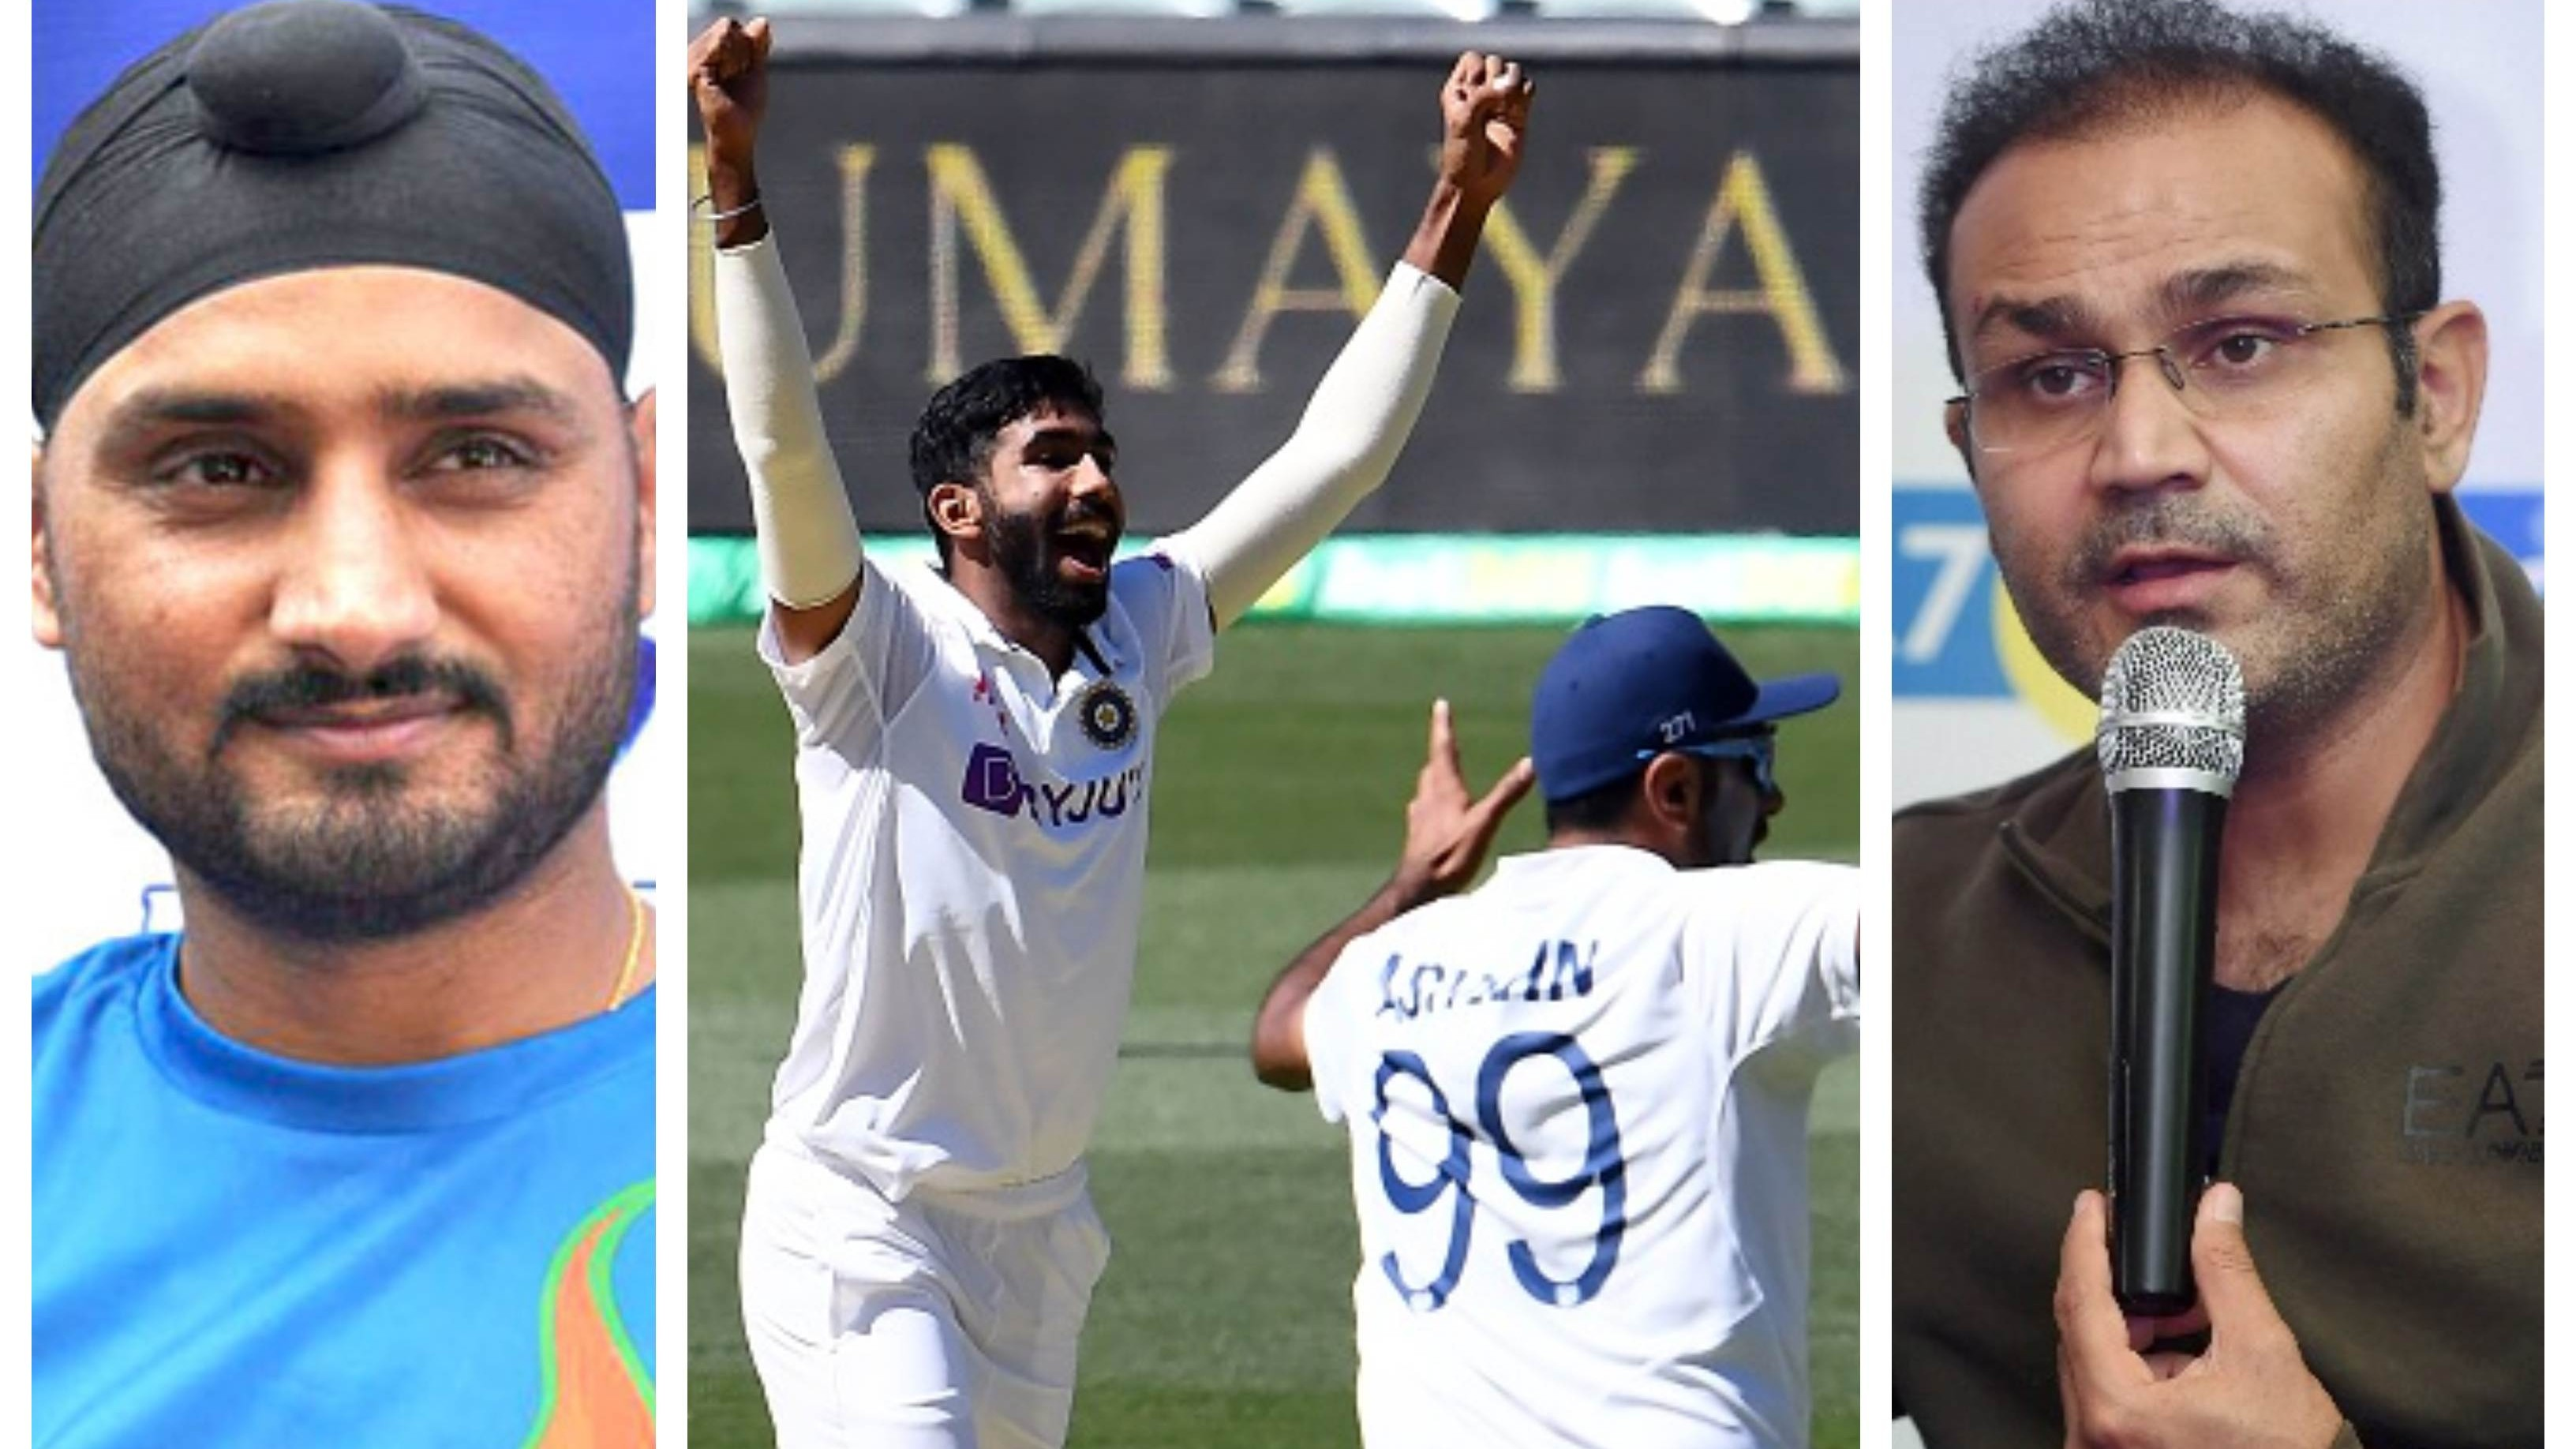 AUS v IND 2020-21: Cricket fraternity reacts as bowlers put India in a commanding position on Day 1 at MCG